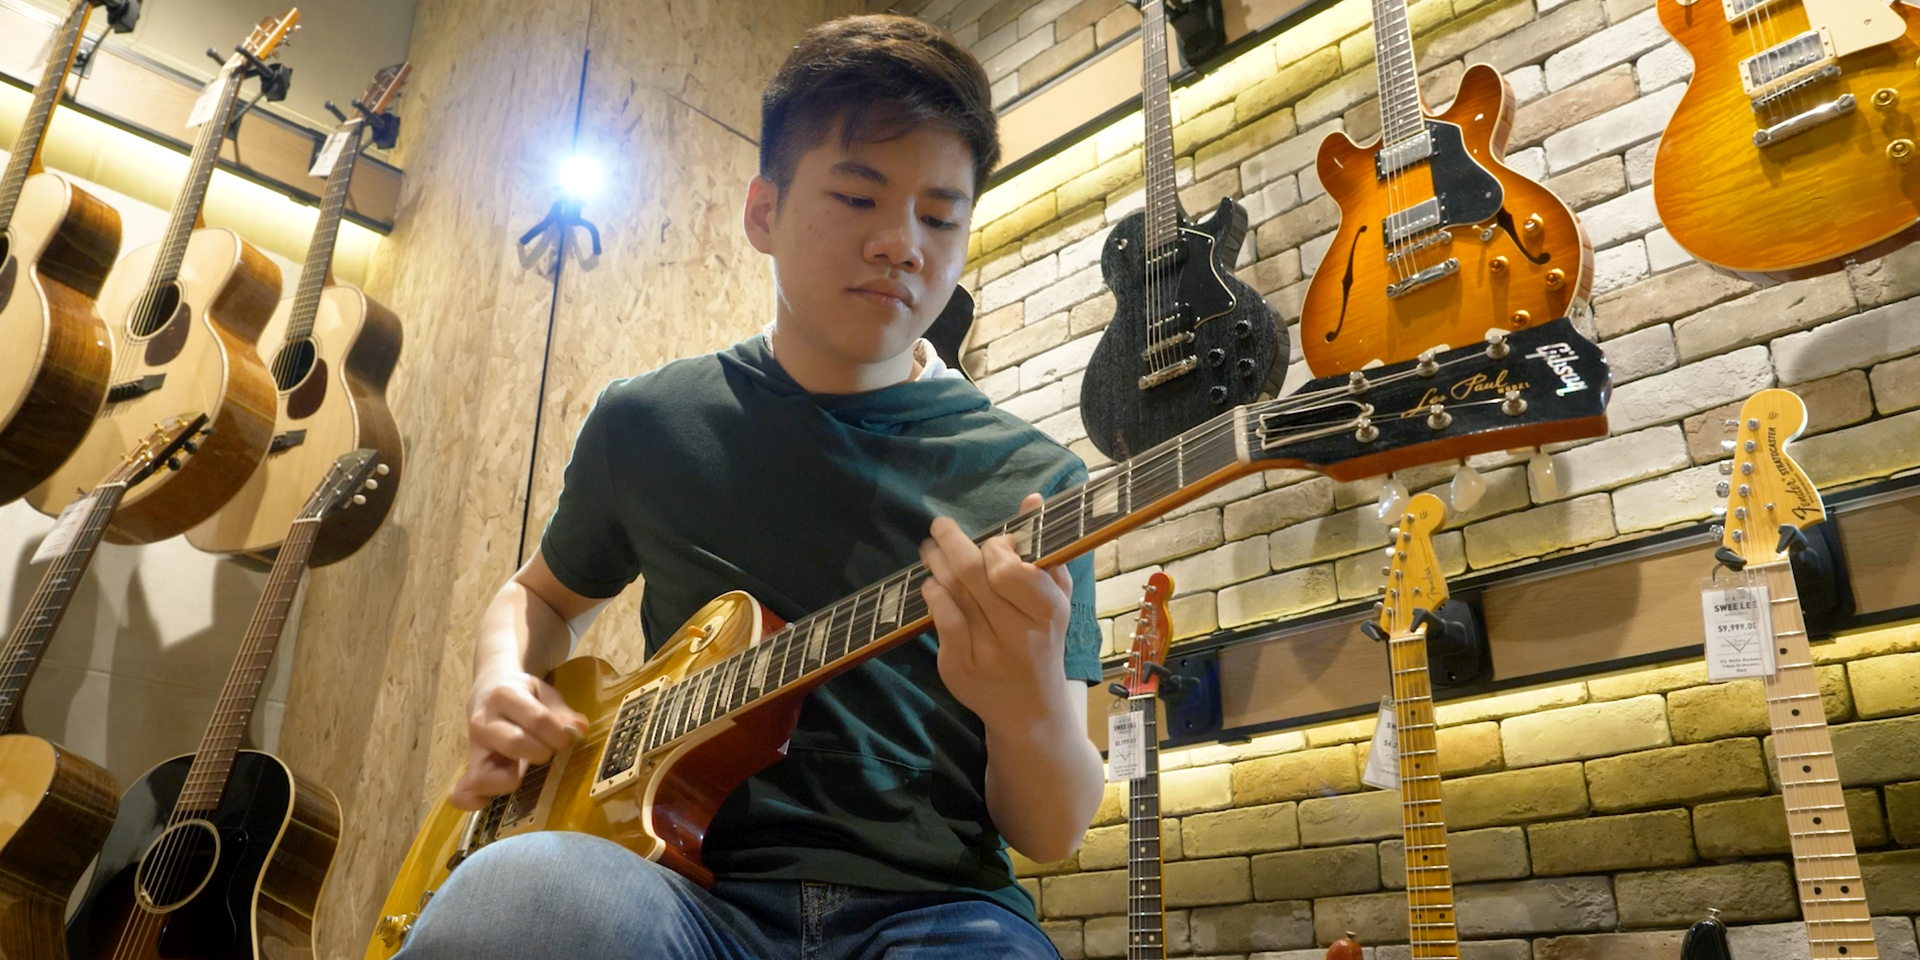 Guitar prodigy Alex Hooi solos for Bandwagon Sessions – watch